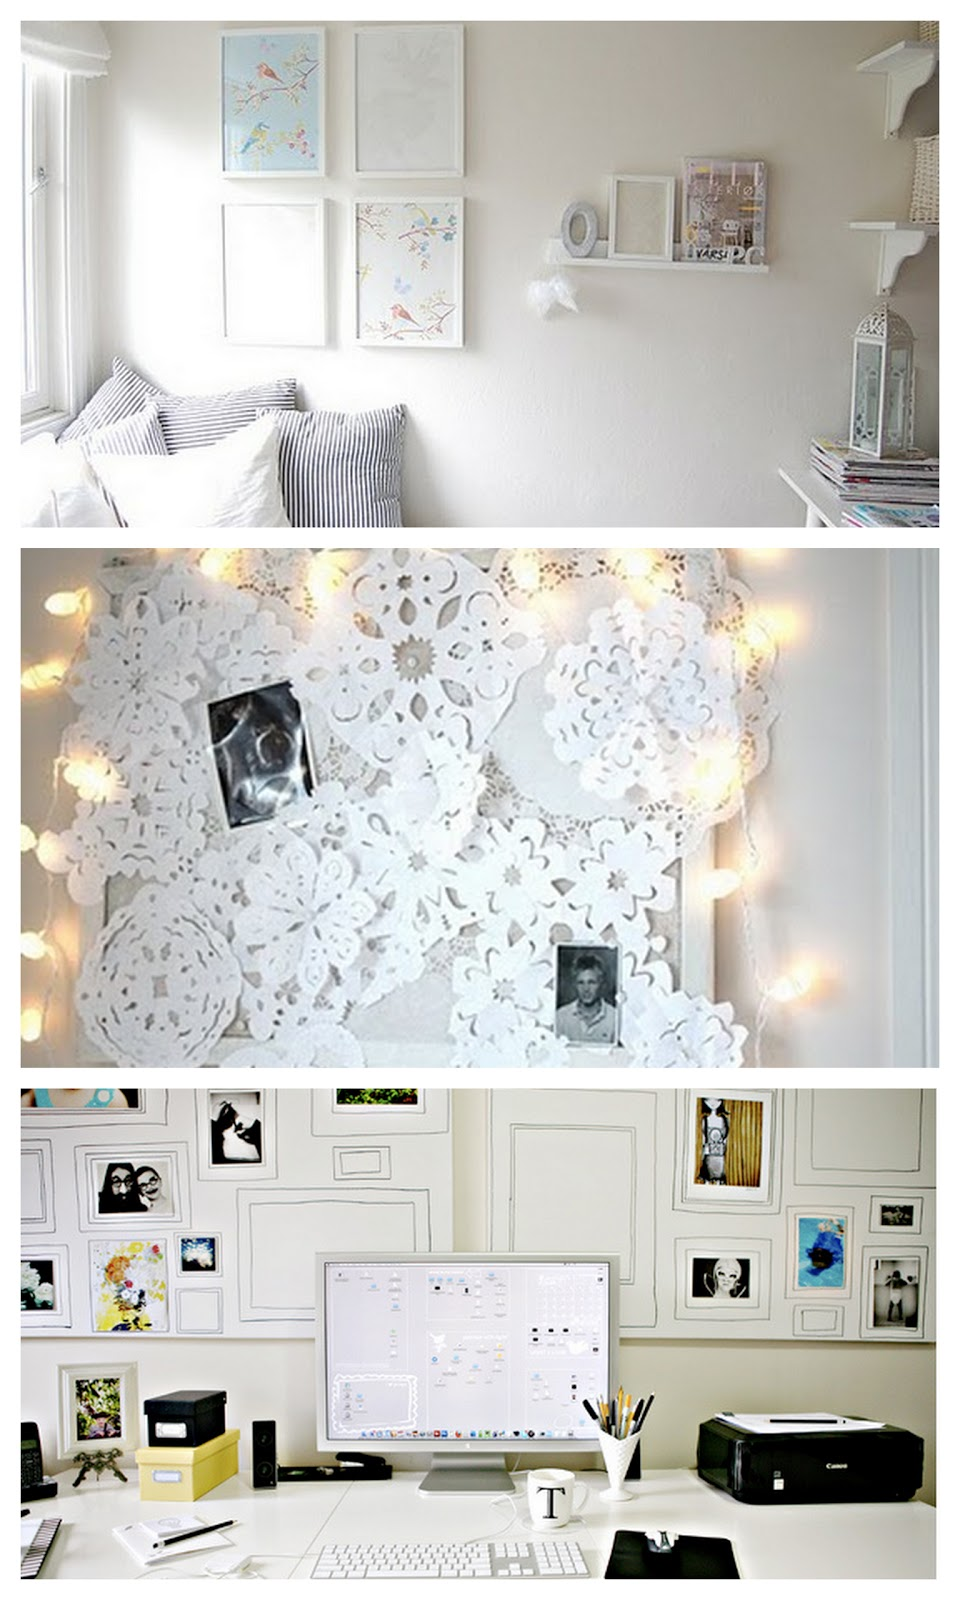 Displaying 16 gt  Images For - Indie Bedrooms Decorating Ideas   Indie Bedrooms Decorating Ideas